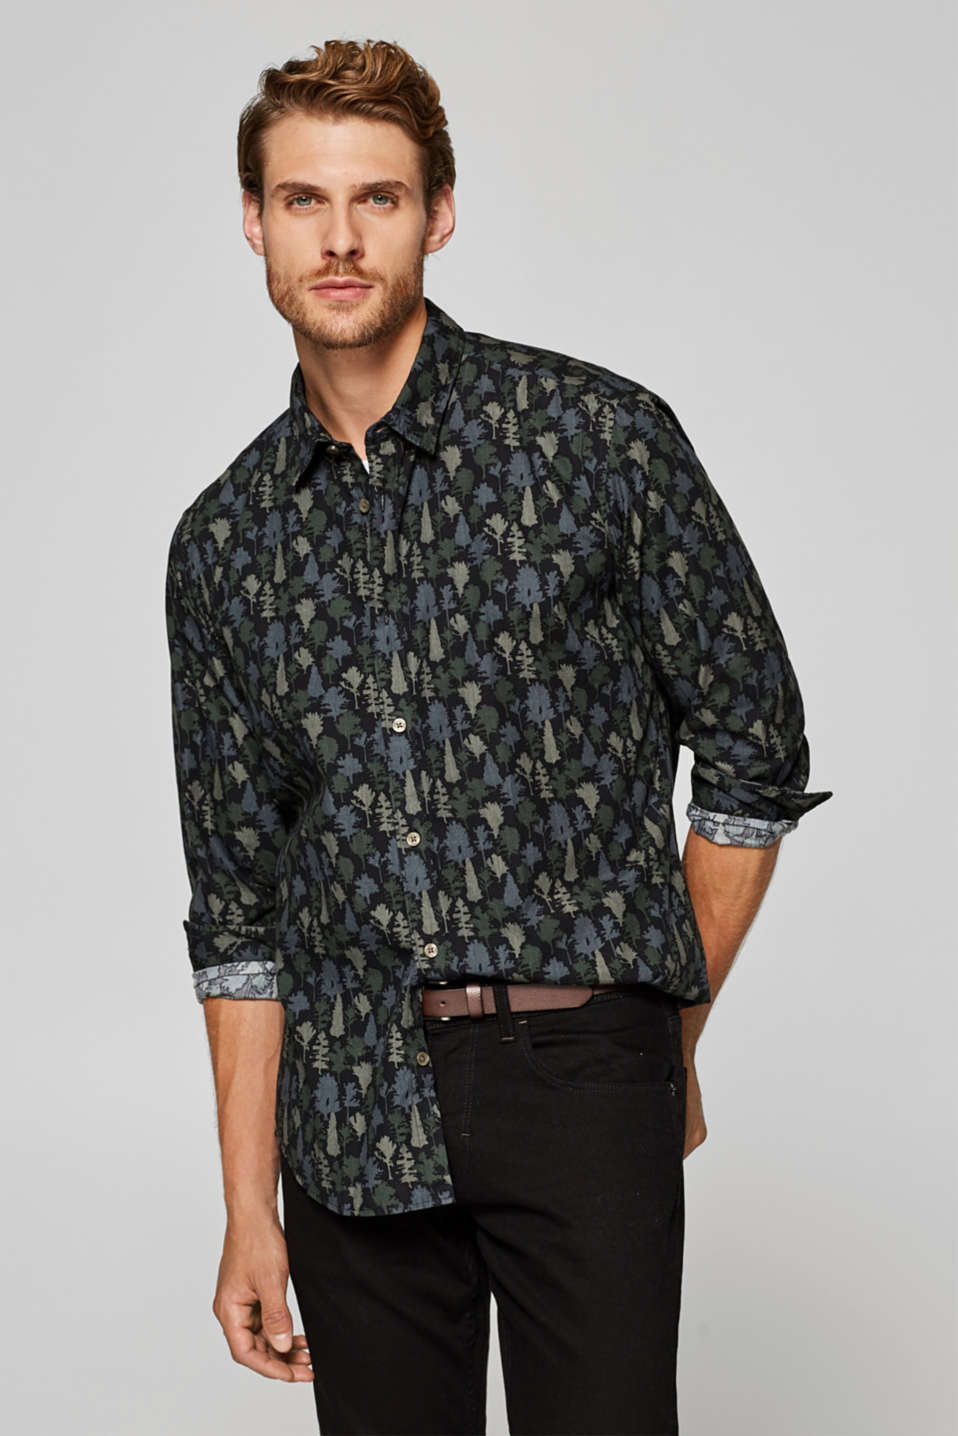 Esprit - Shirt with a tree print, 100% cotton